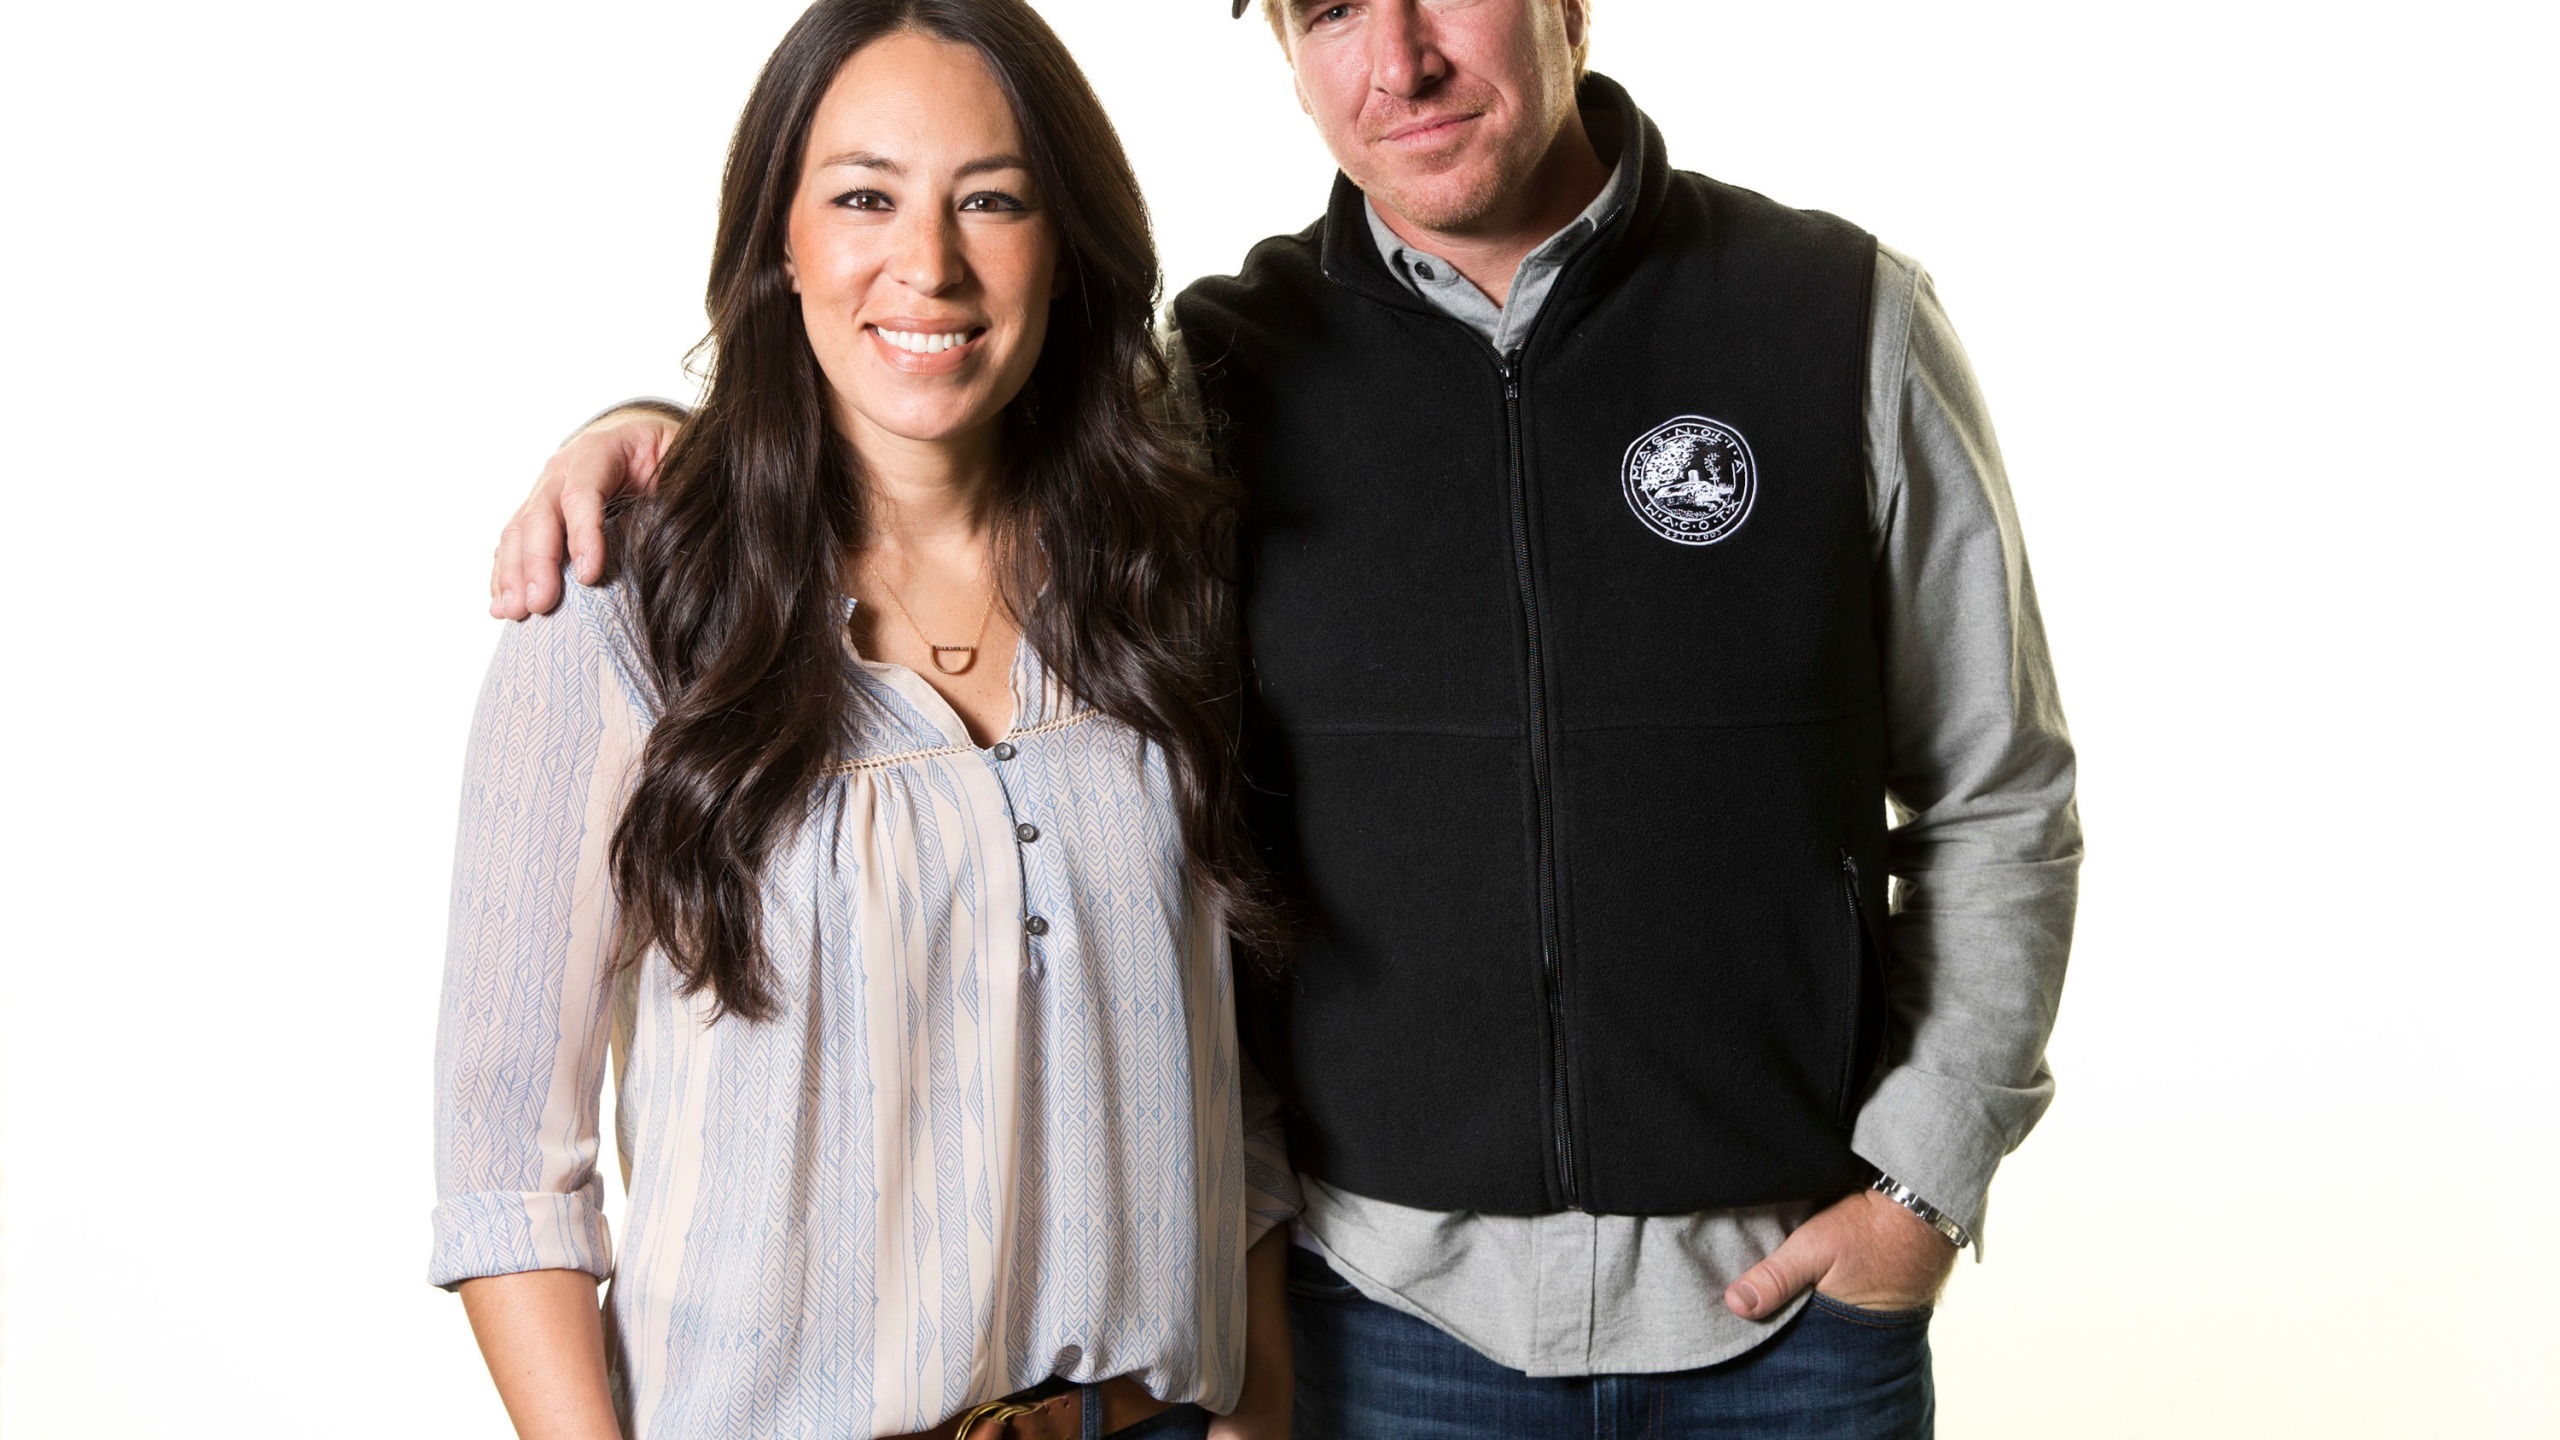 People_Chip_and_Joanna_Gaines_69102-159532.jpg08985066